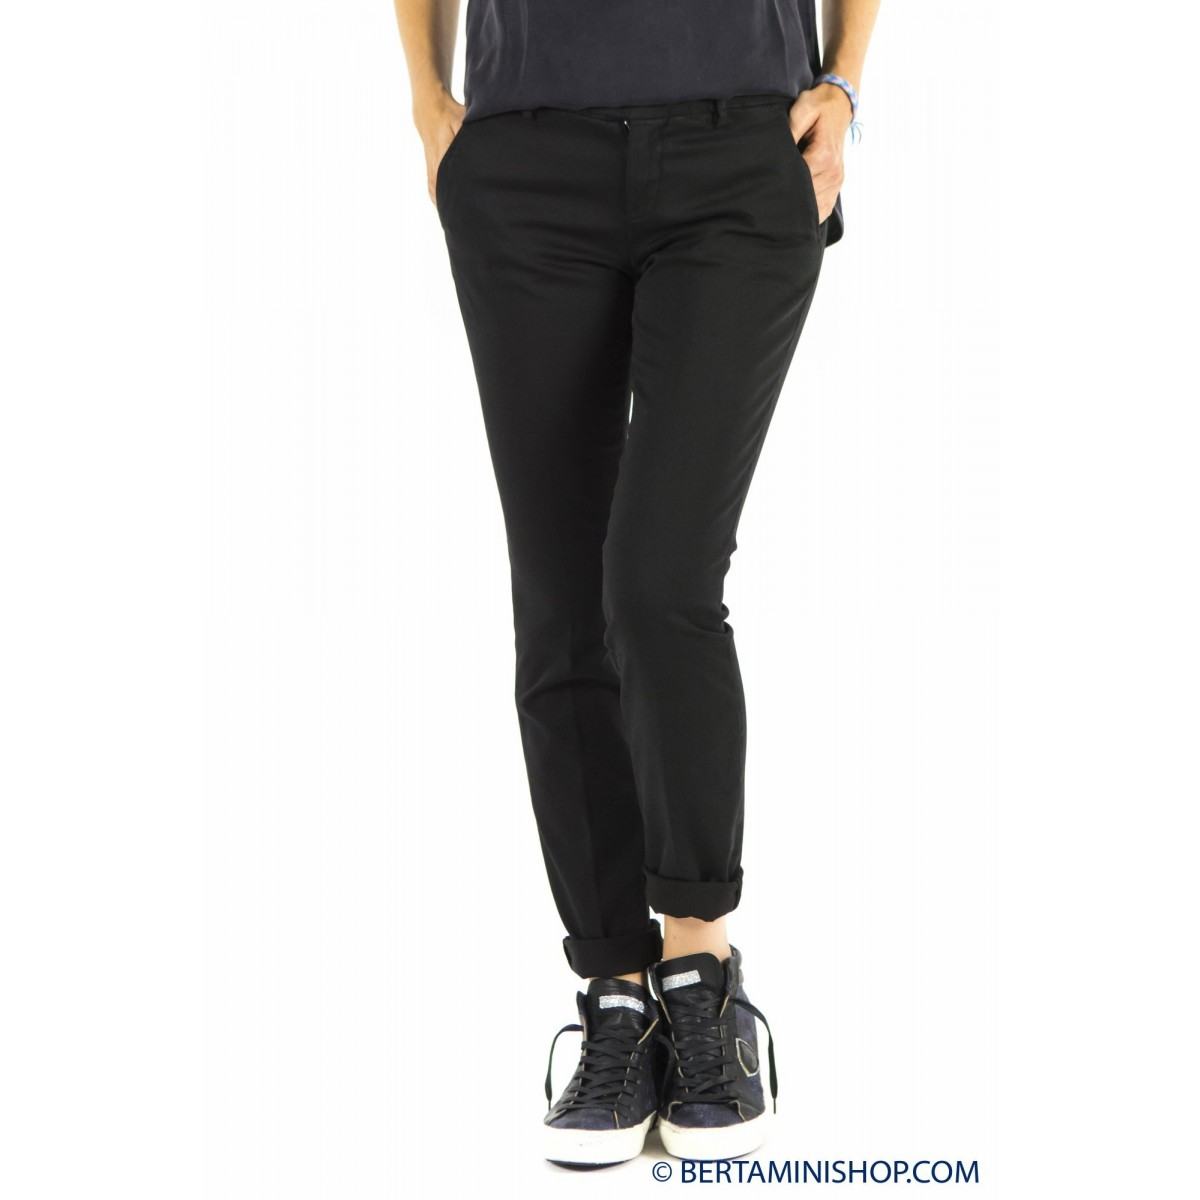 Trousers Roy Rogers Woman - Roxane Raso 020 - nero